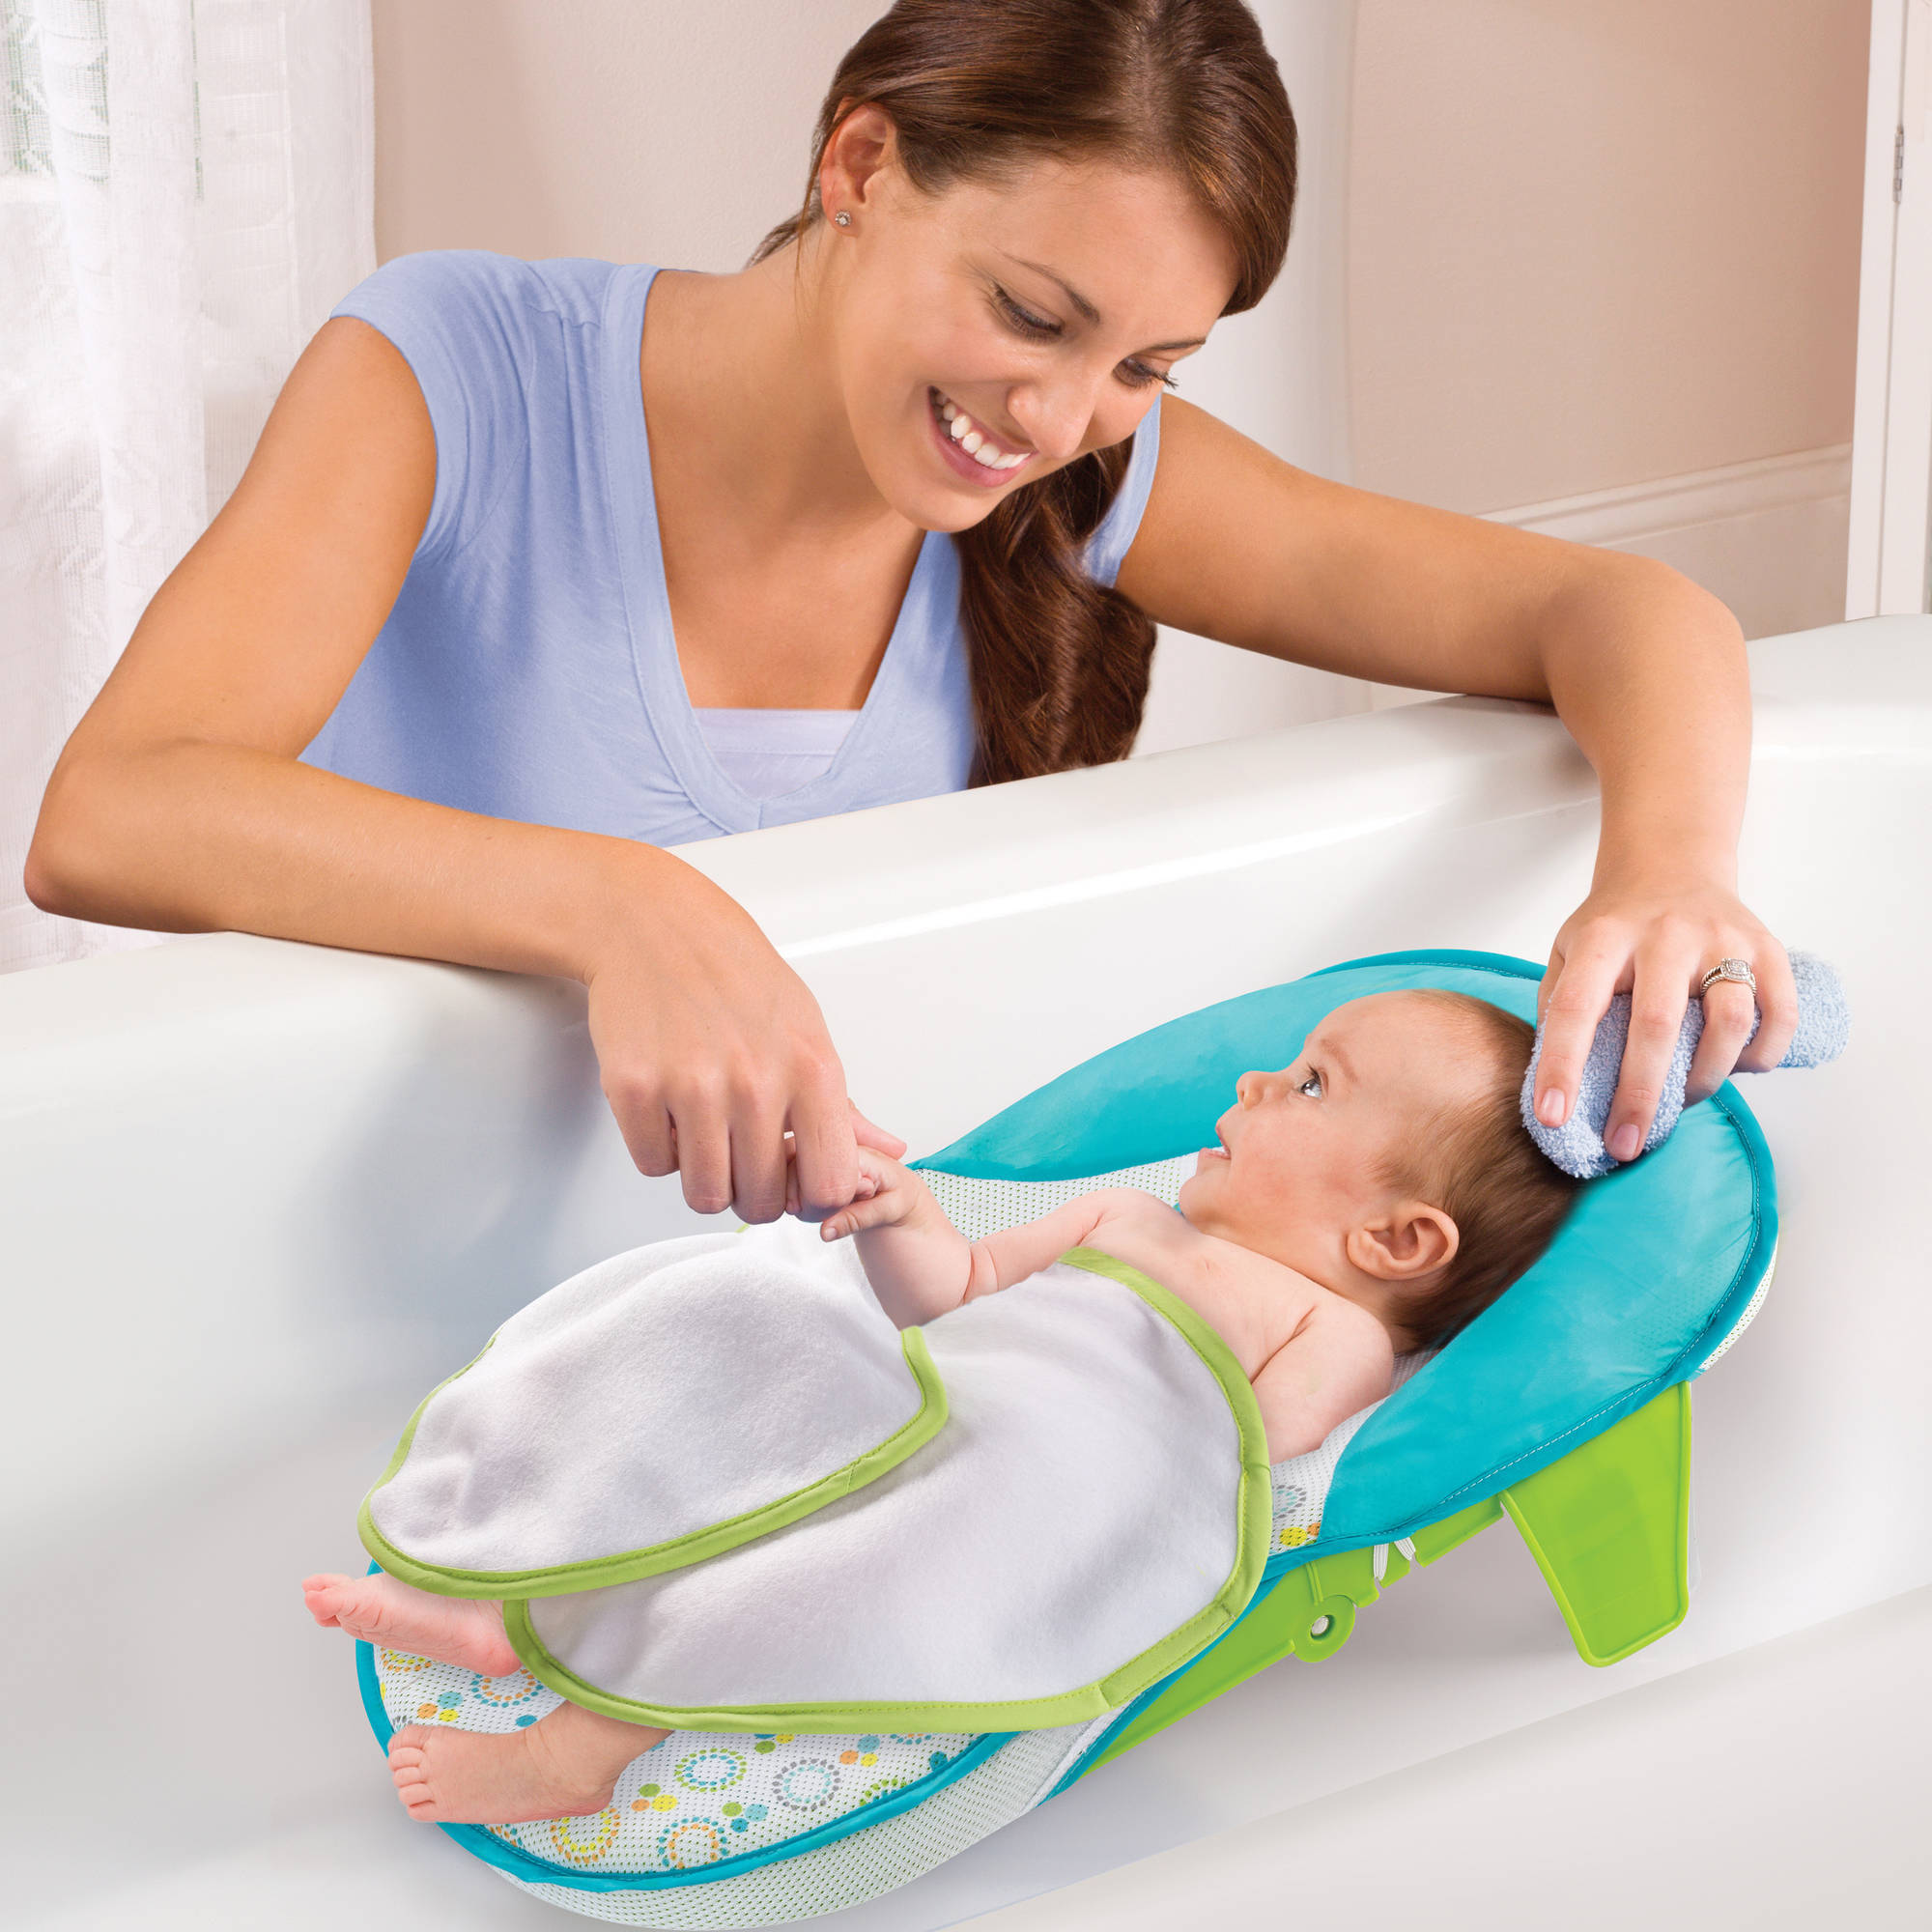 Summer Infant Folding Bath Sling with Warming Wings - Walmart.com